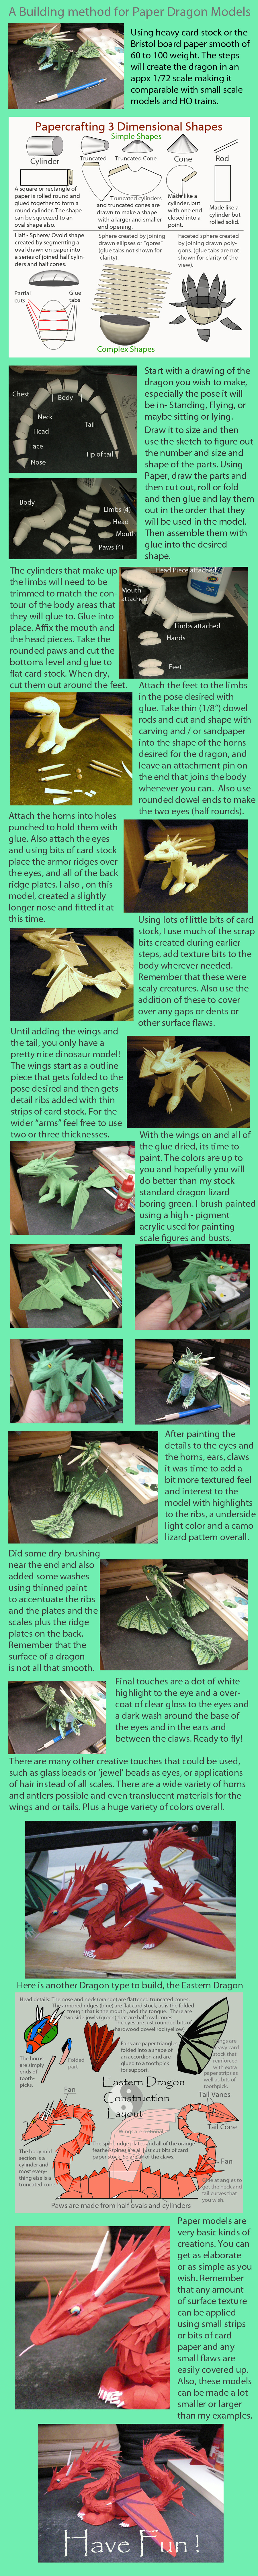 Tutorial on making Paper dragon models by Rekalnus